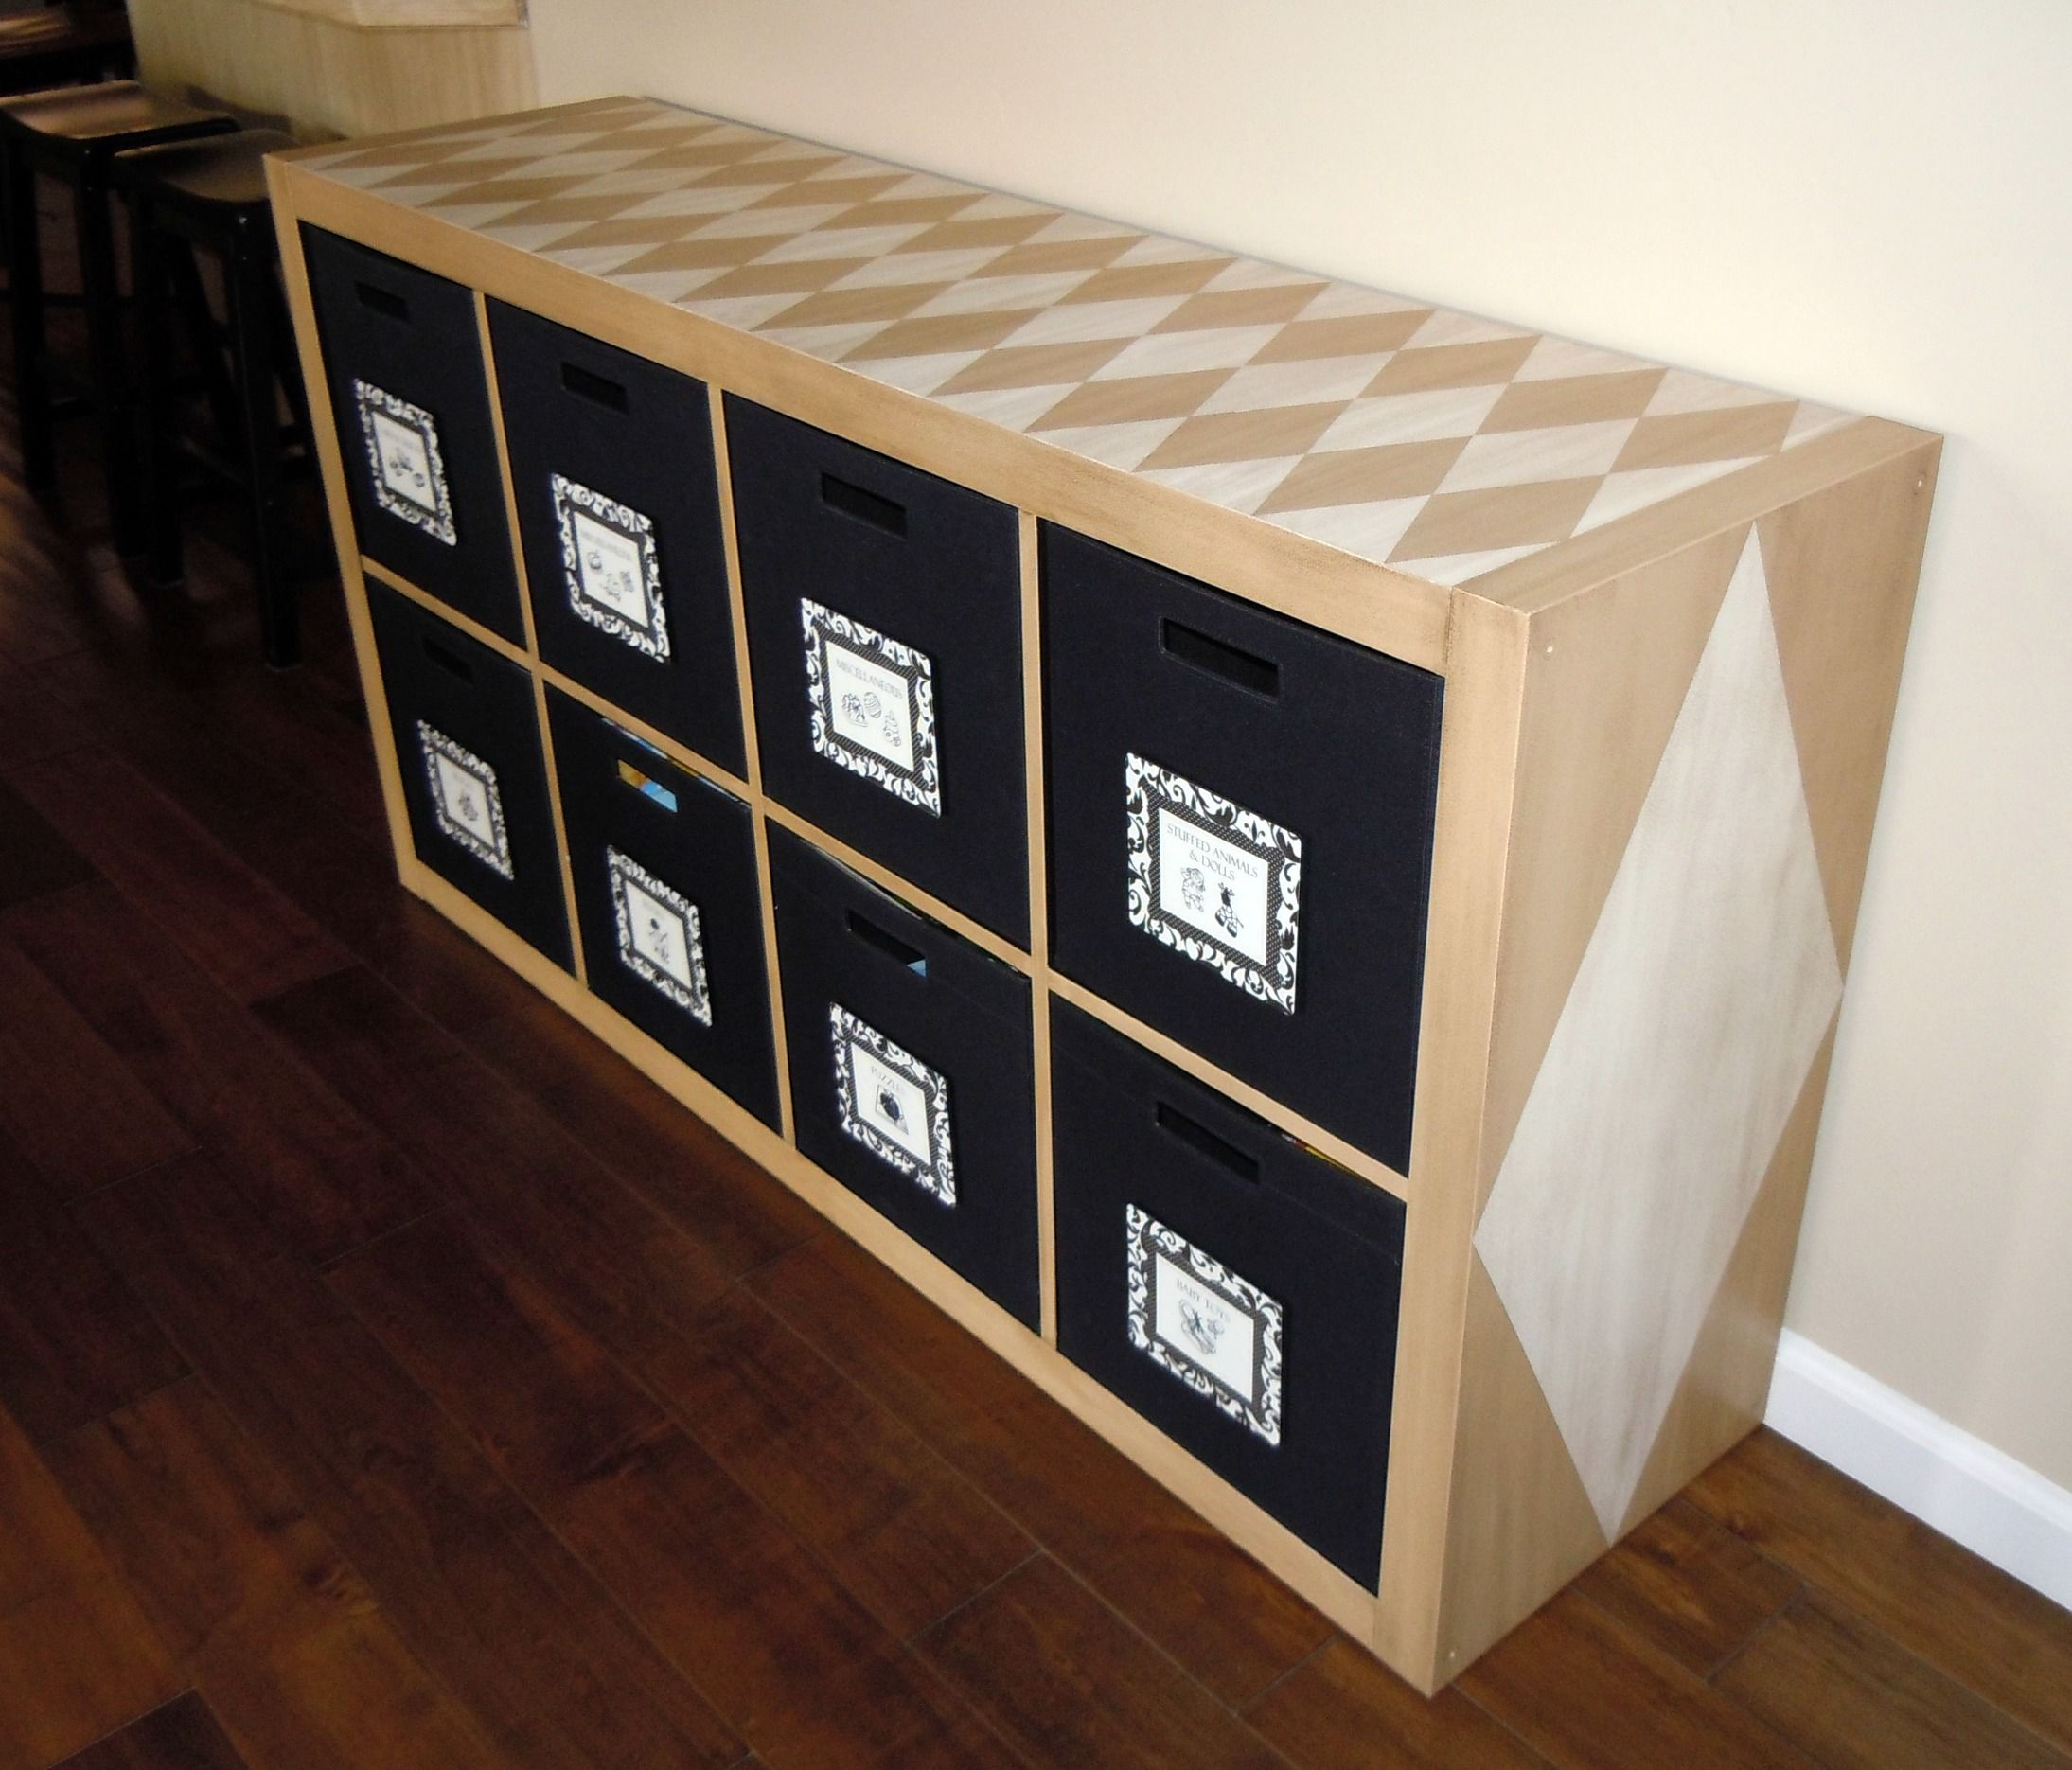 Ikea Expedit Shelving Unit With Target Itso Fabric Bins